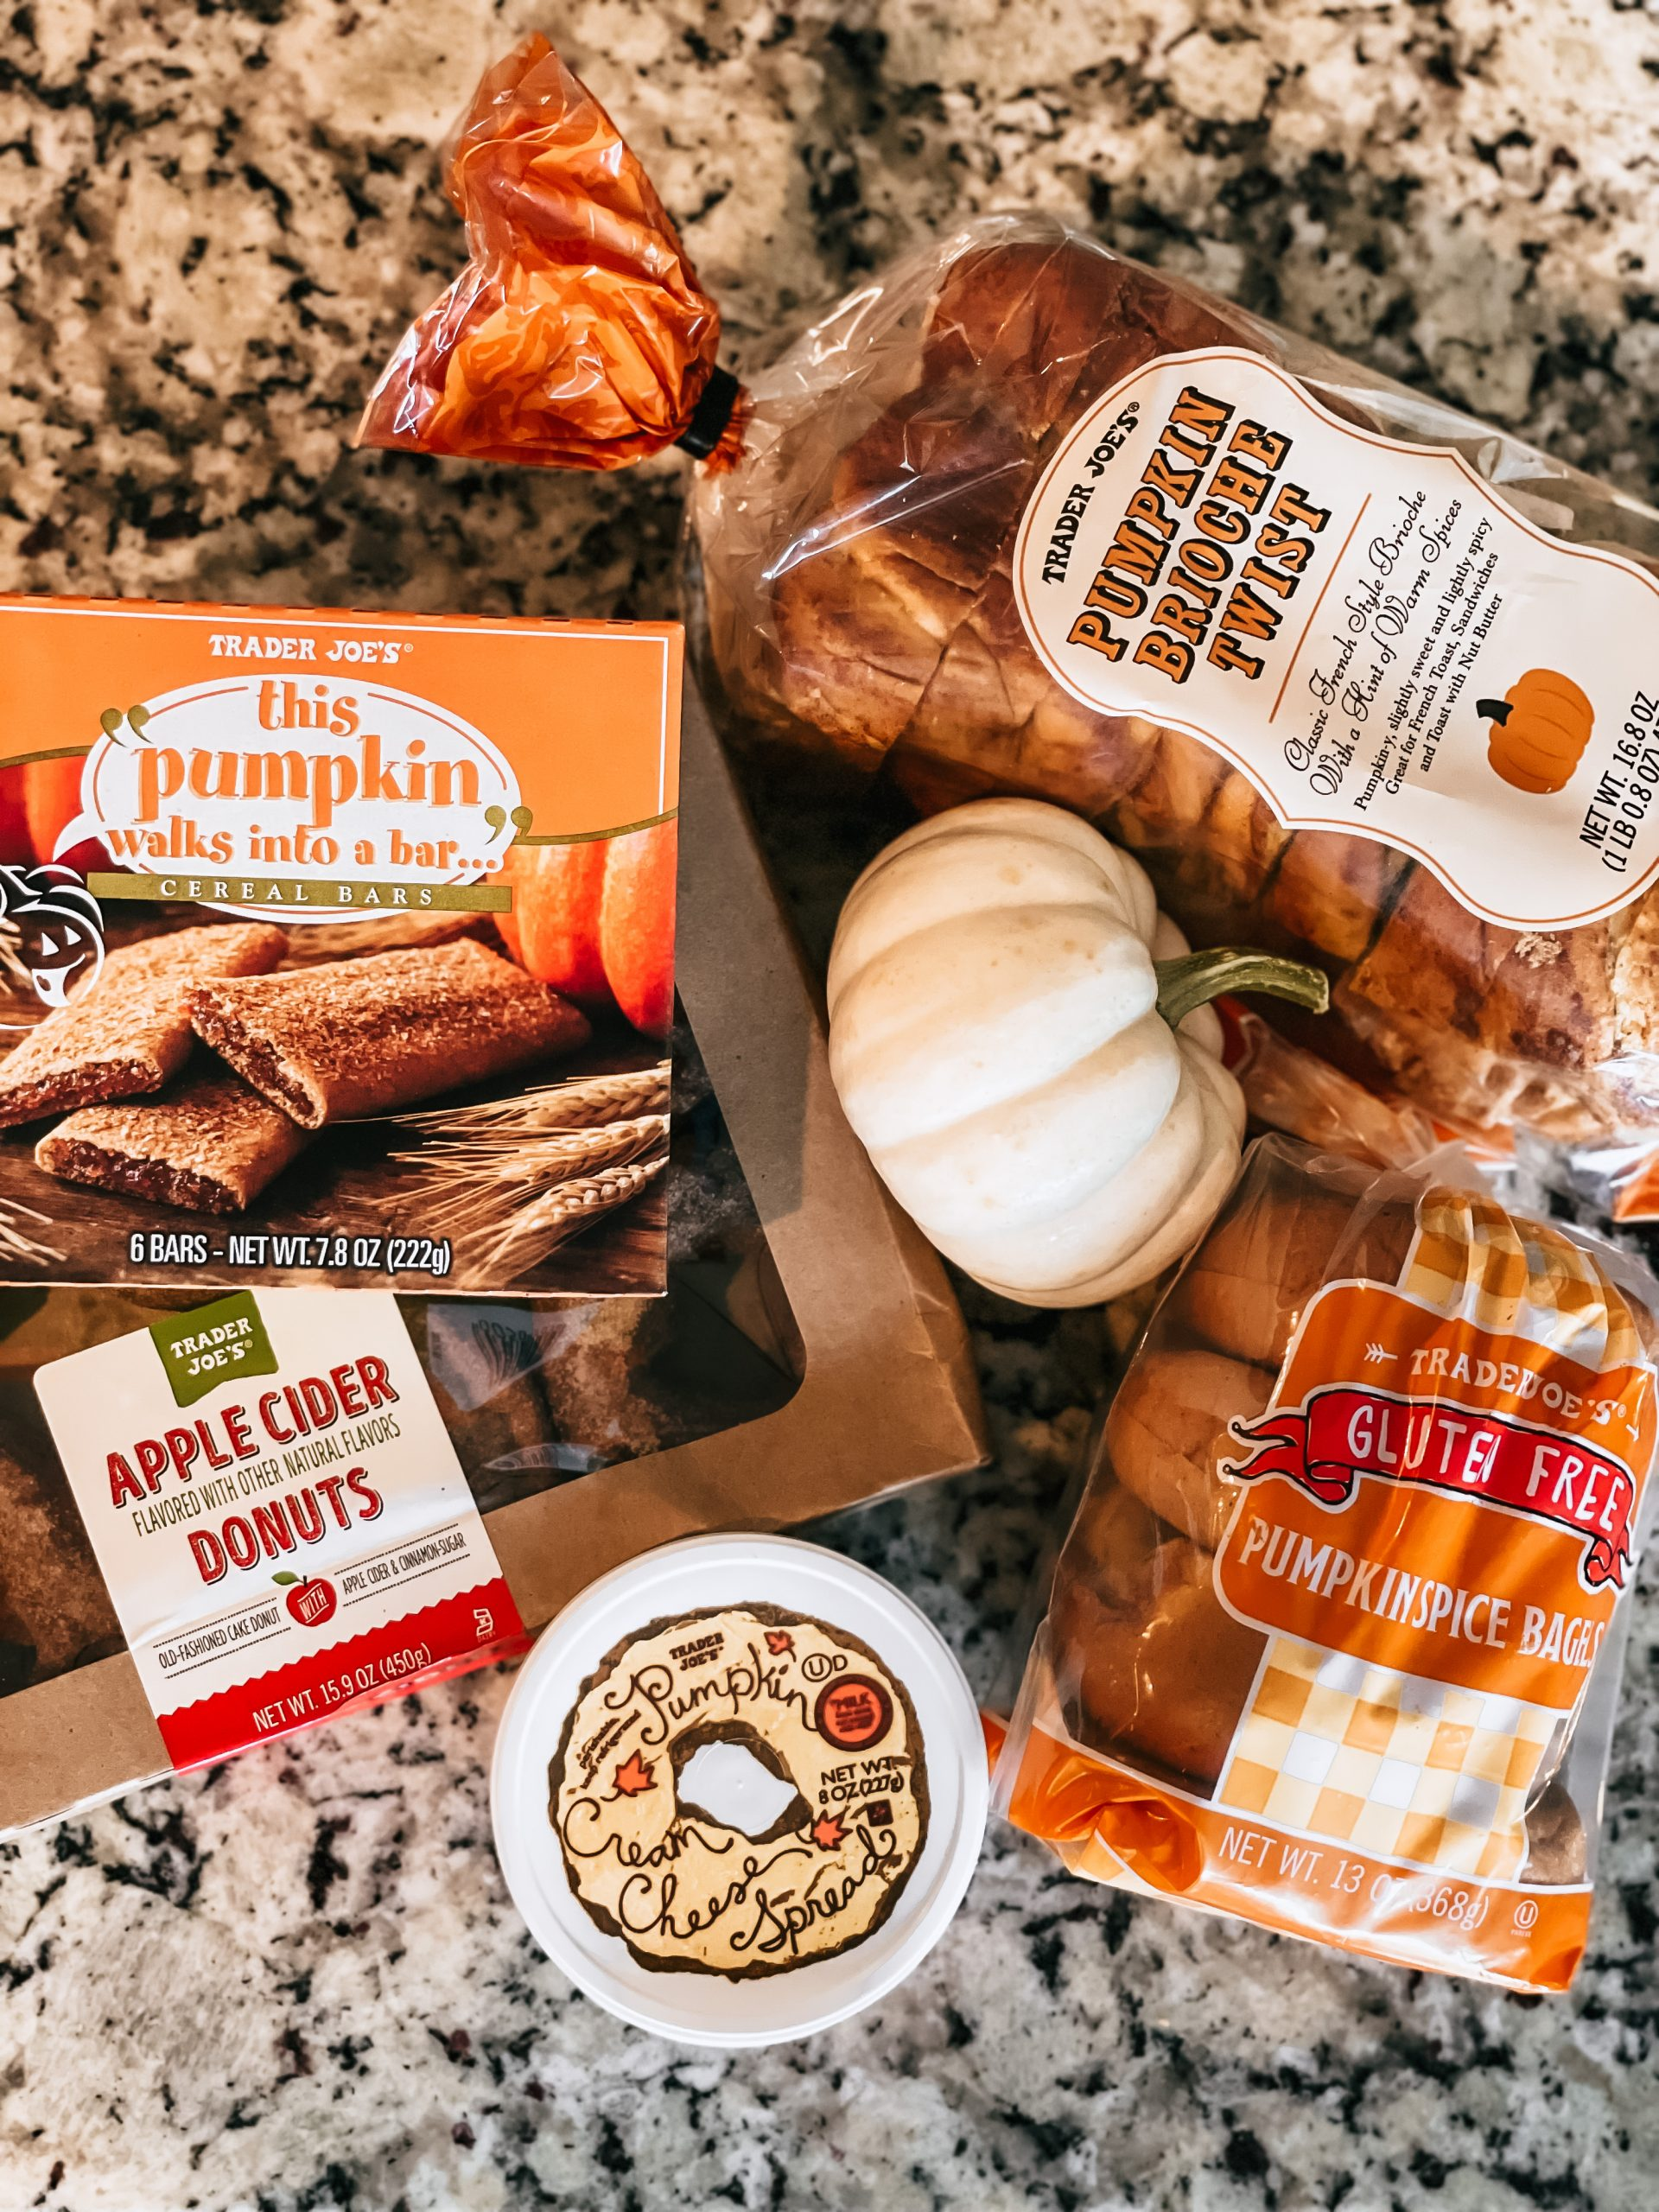 fall favorite breakfast items from trader joes on counter